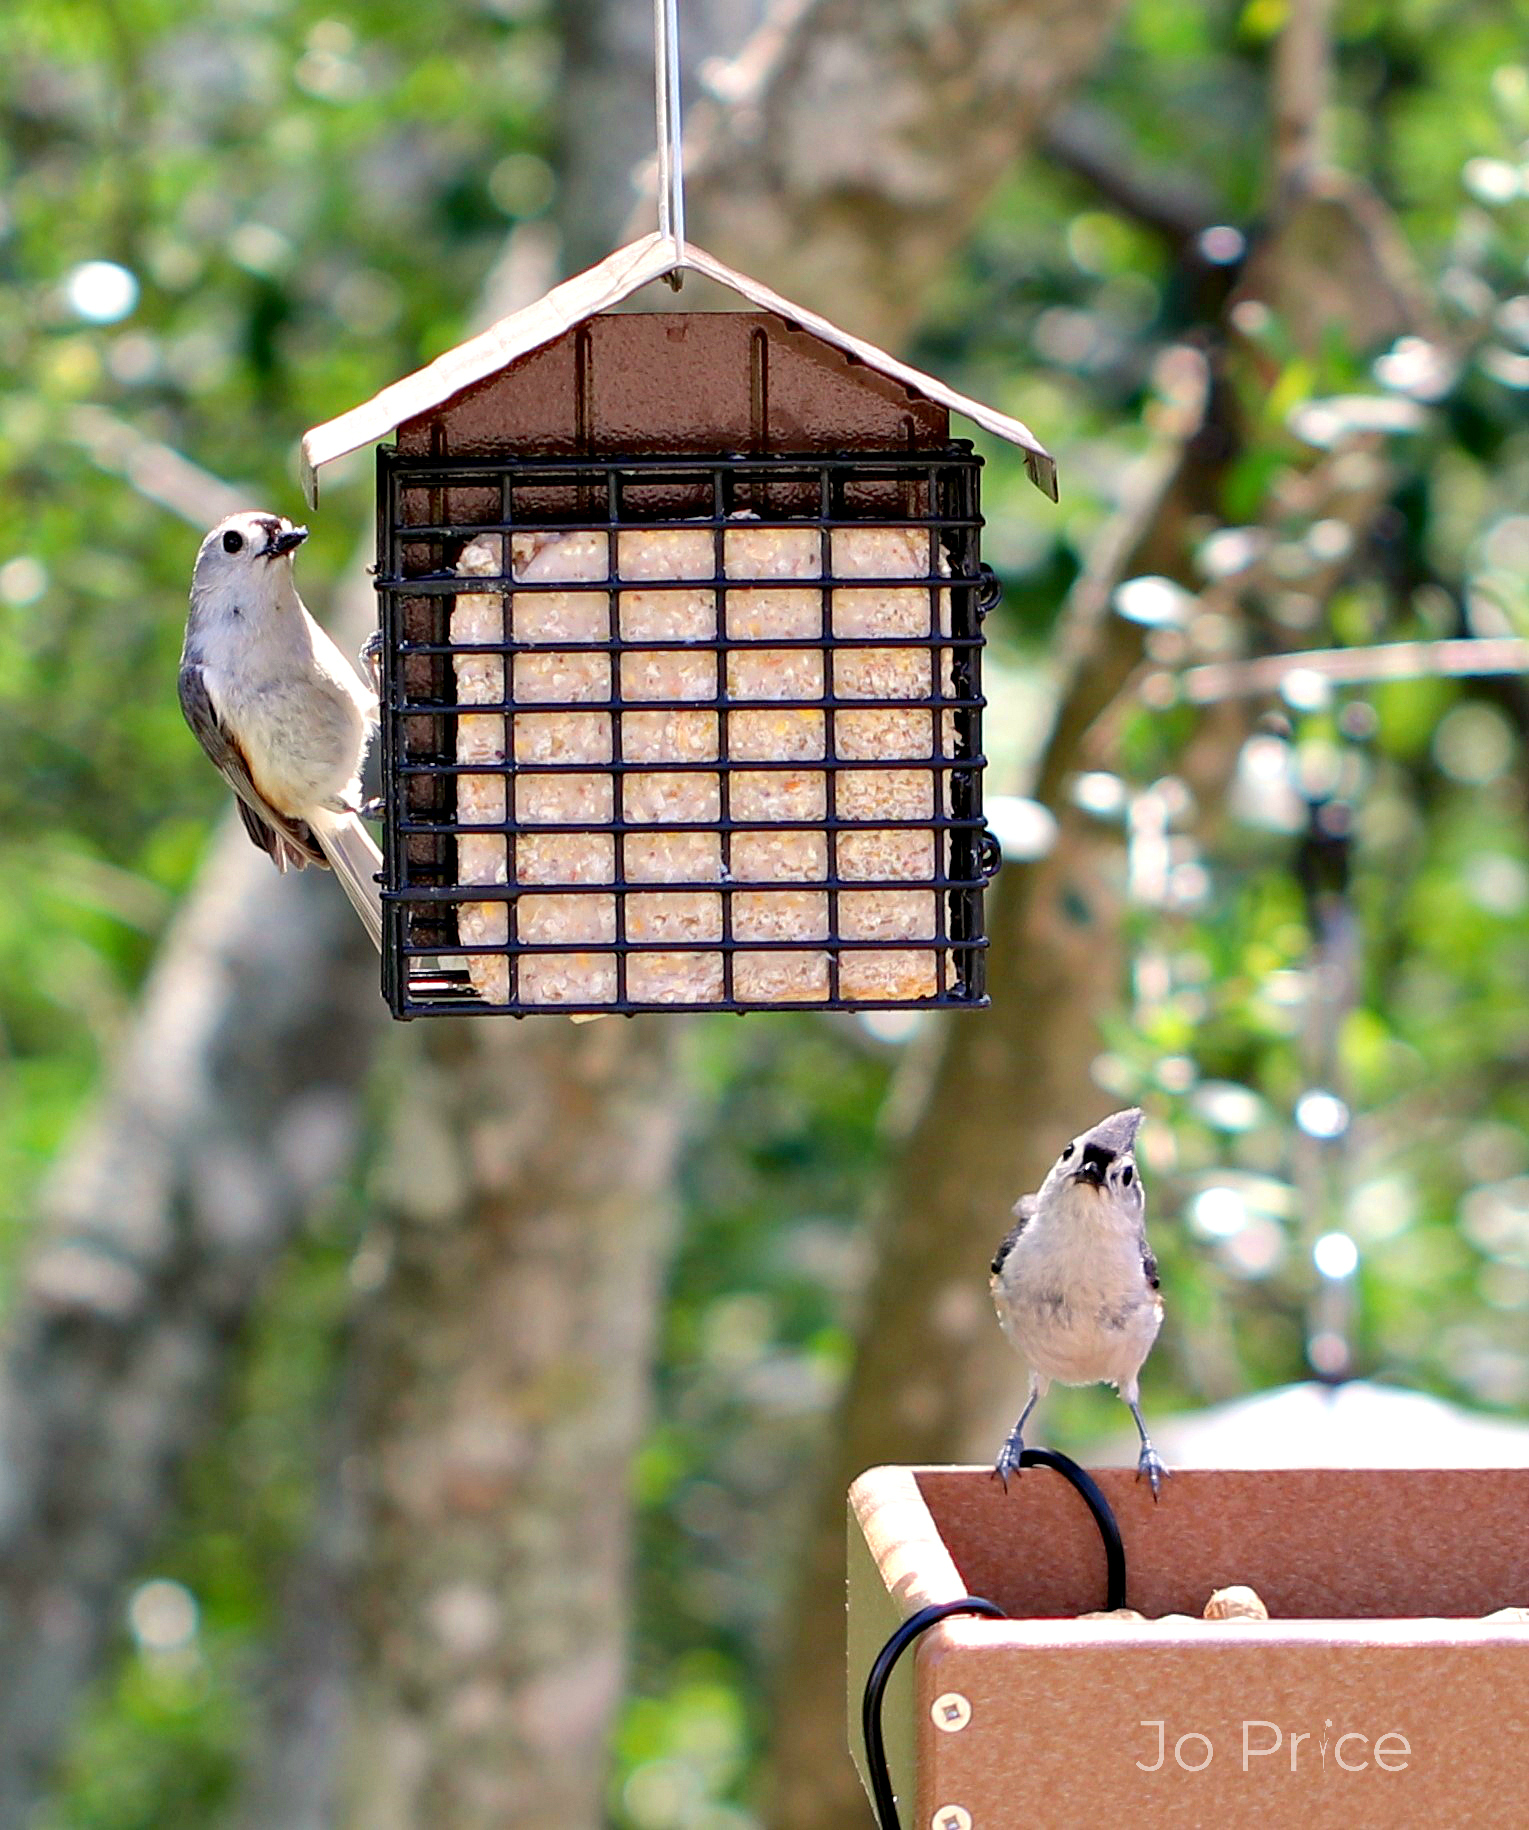 birds - titmouses not titmice a